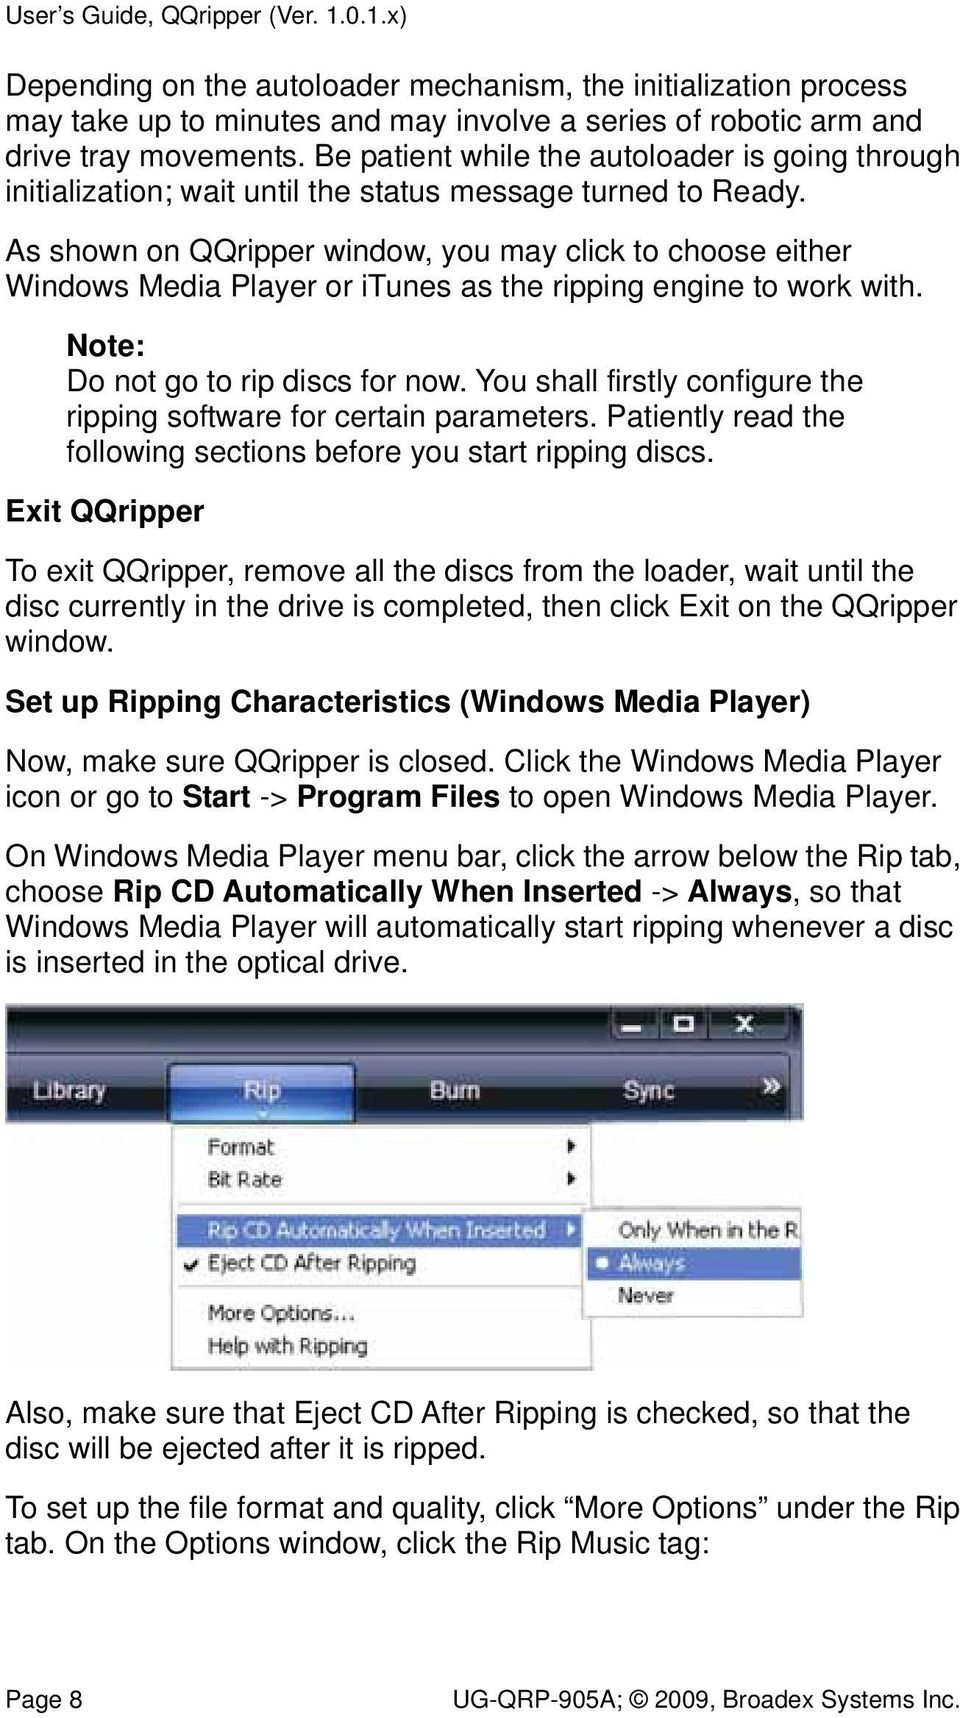 As shown on QQripper window, you may click to choose either Windows Media Player or itunes as the ripping engine to work with. Note: Do not go to rip discs for now.